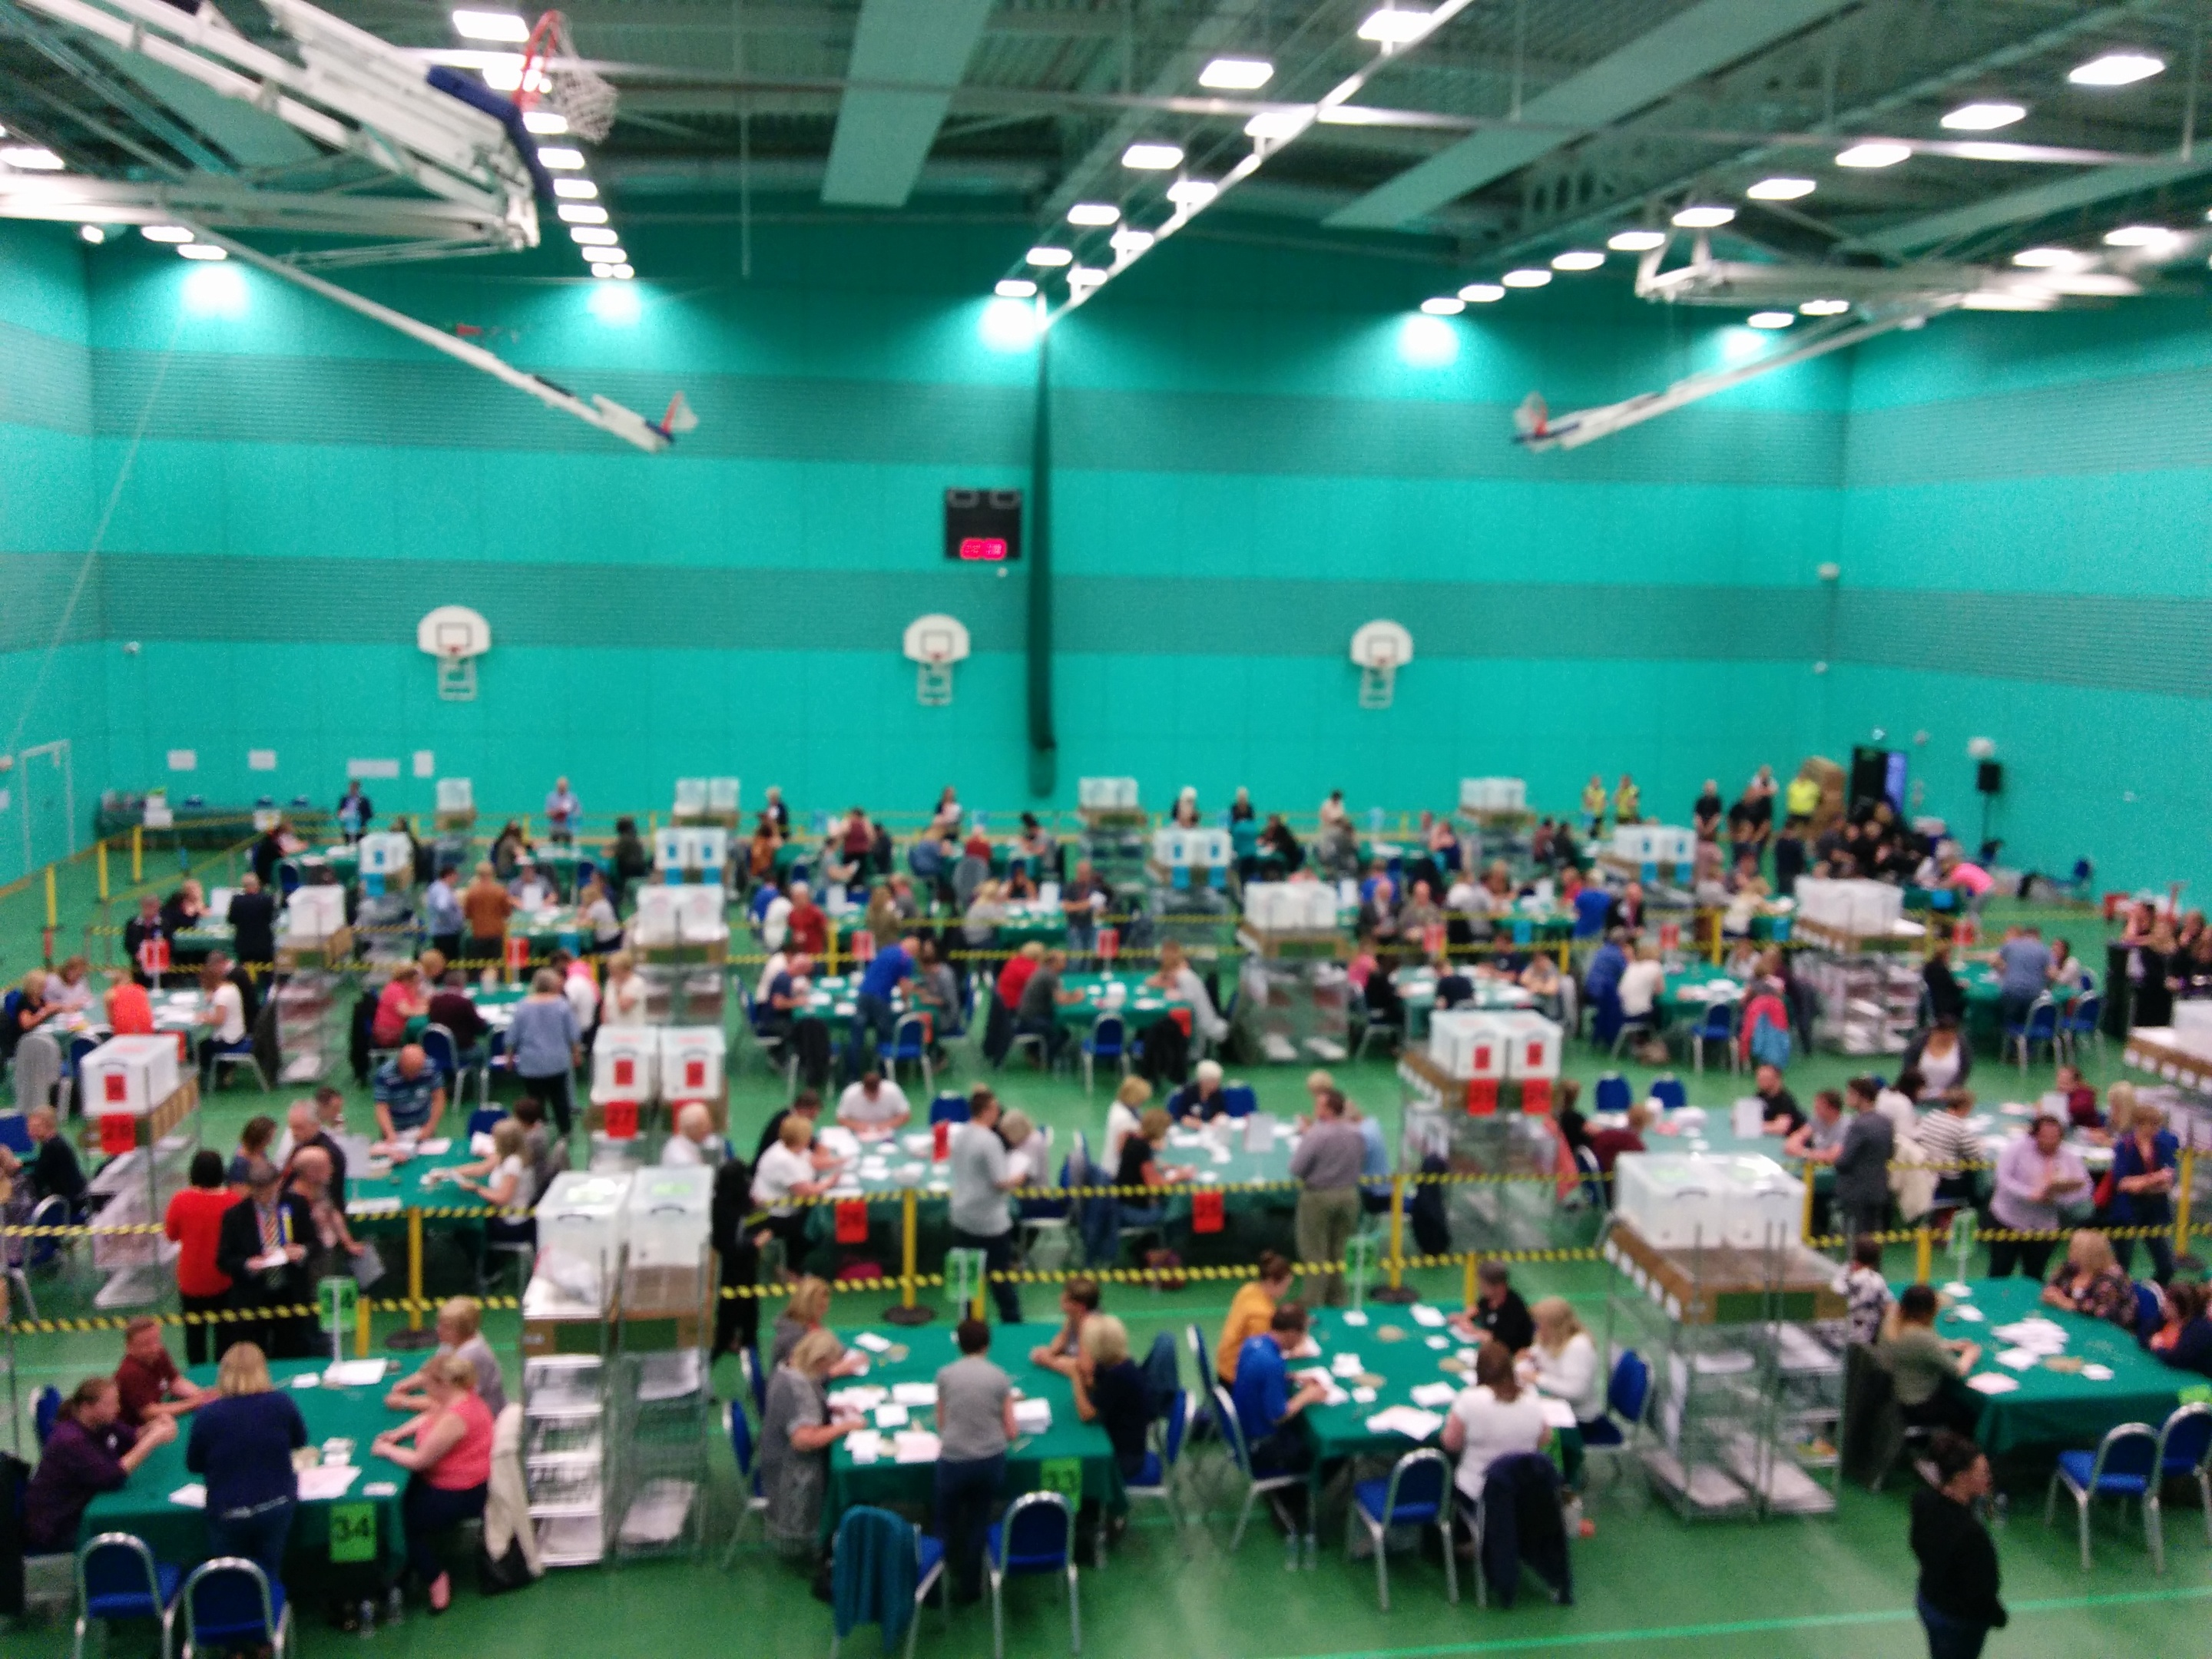 The count underway at the Michael Woods Centre in Glenrothes.